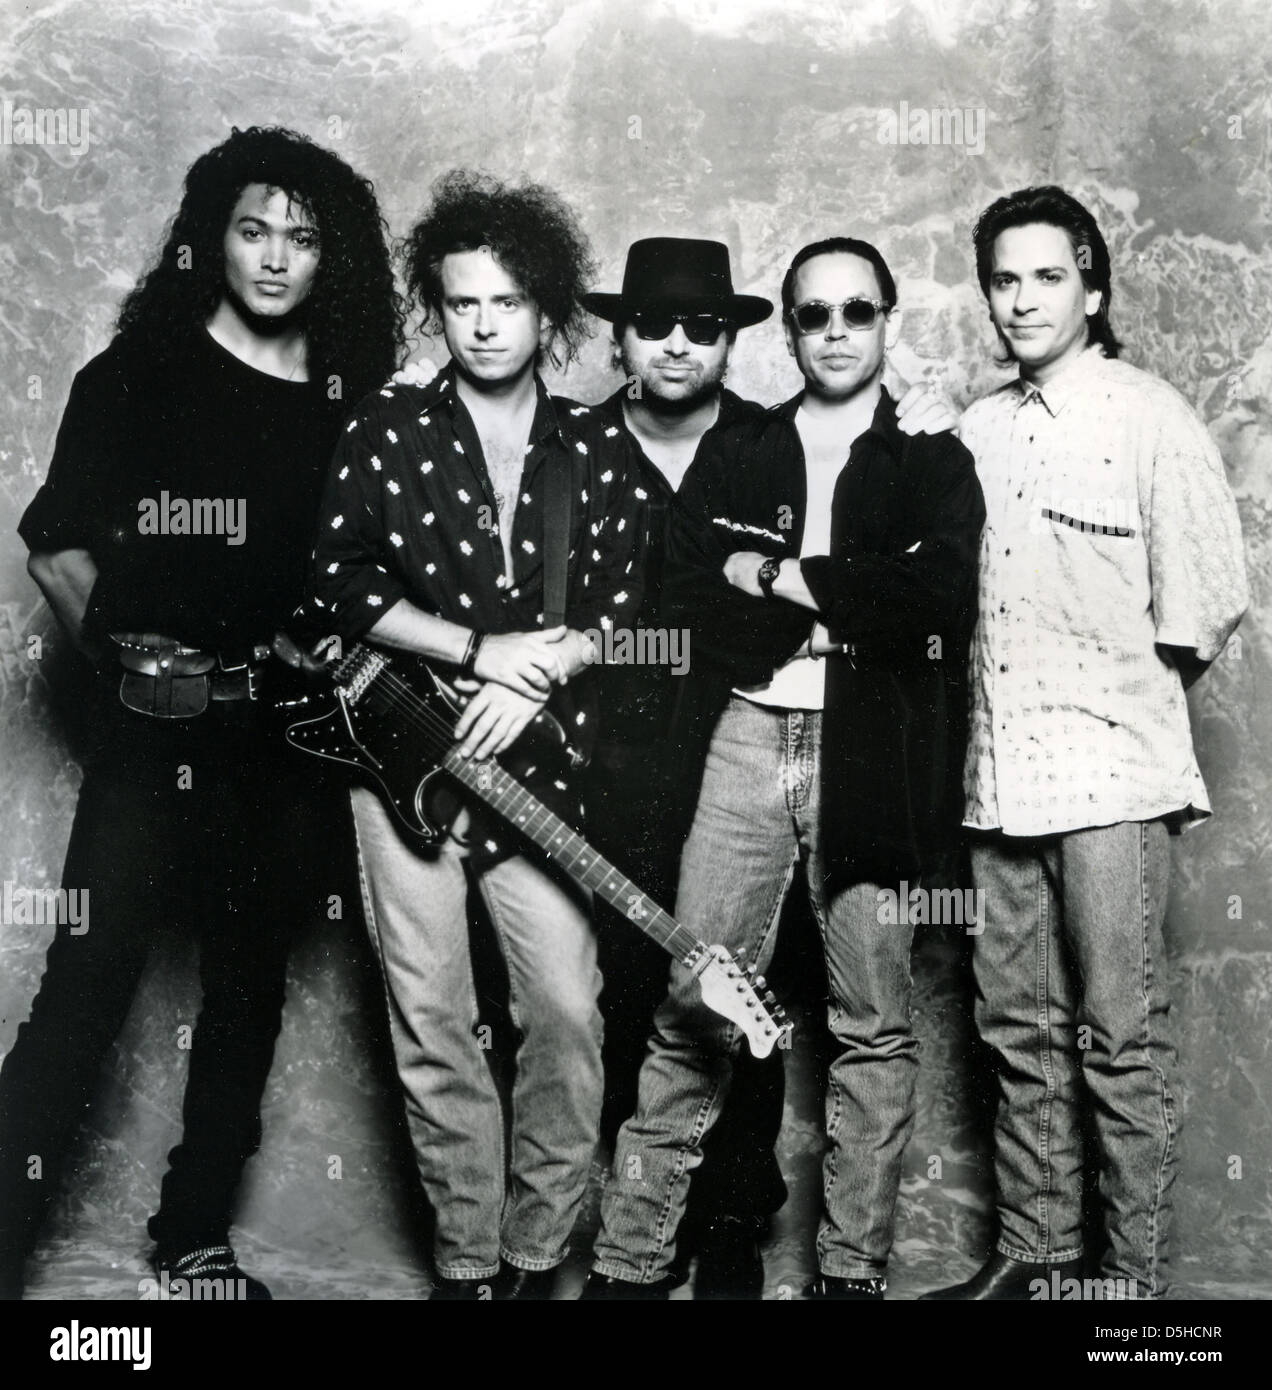 Toto Music Group Stock Photos & Toto Music Group Stock Images - Alamy